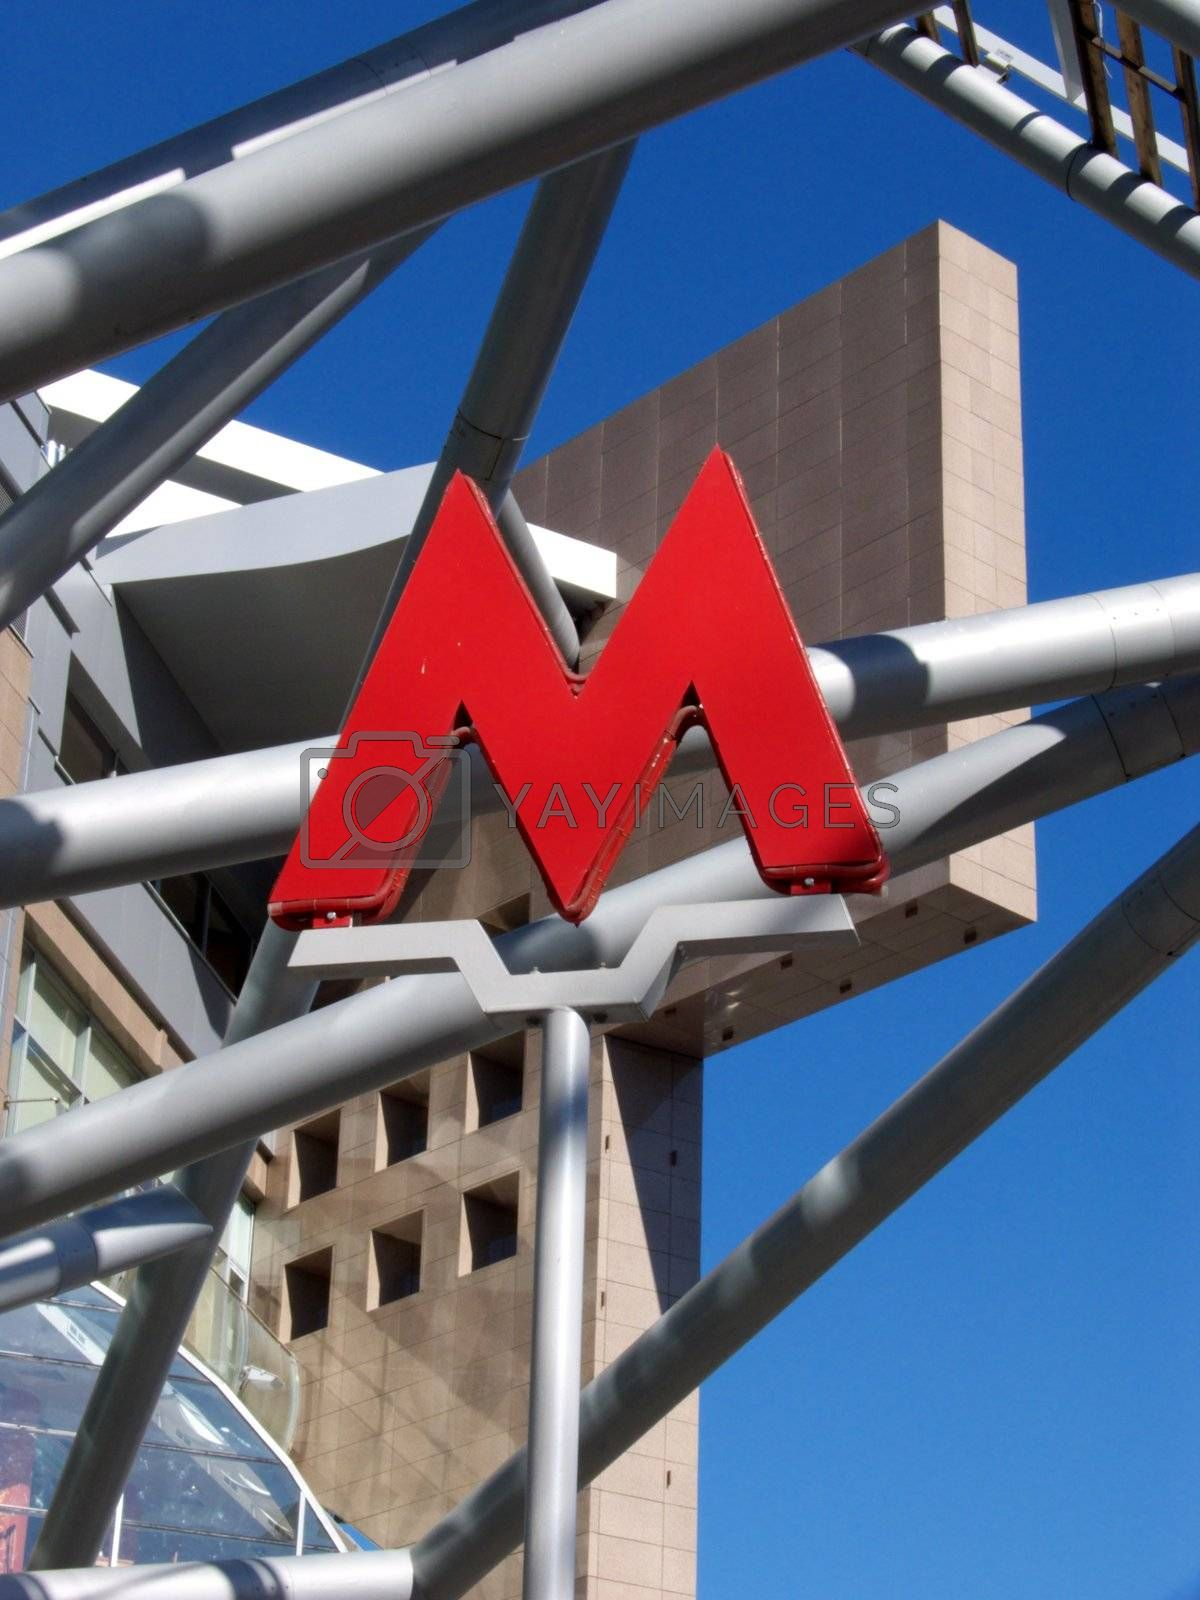 The greater red letter M on a background of a modern building.